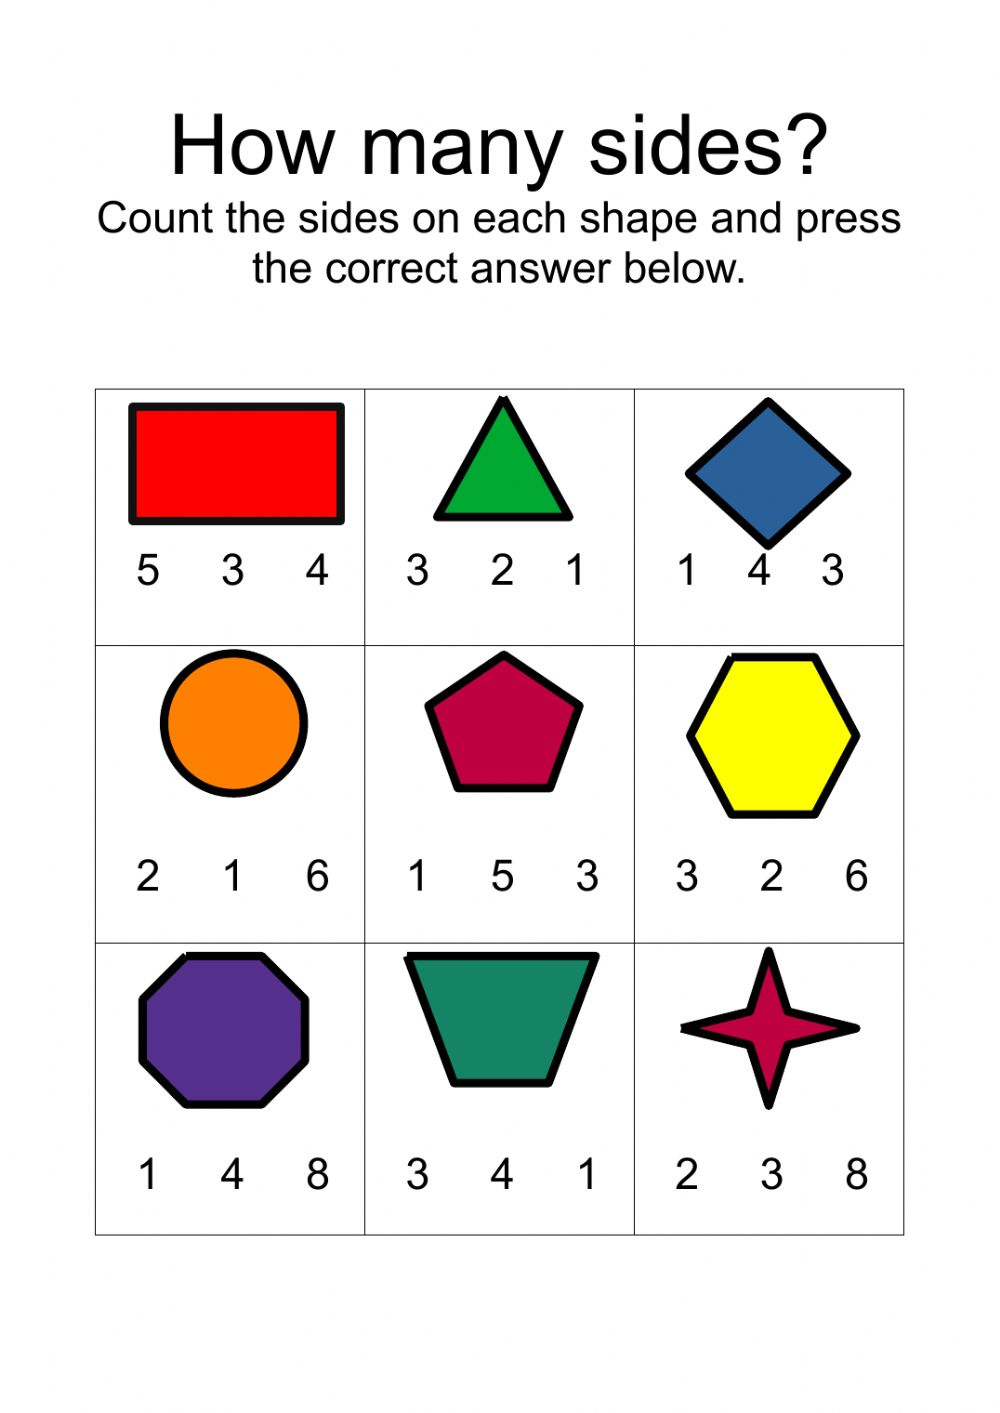 medium resolution of Counting Sides on Shapes worksheet